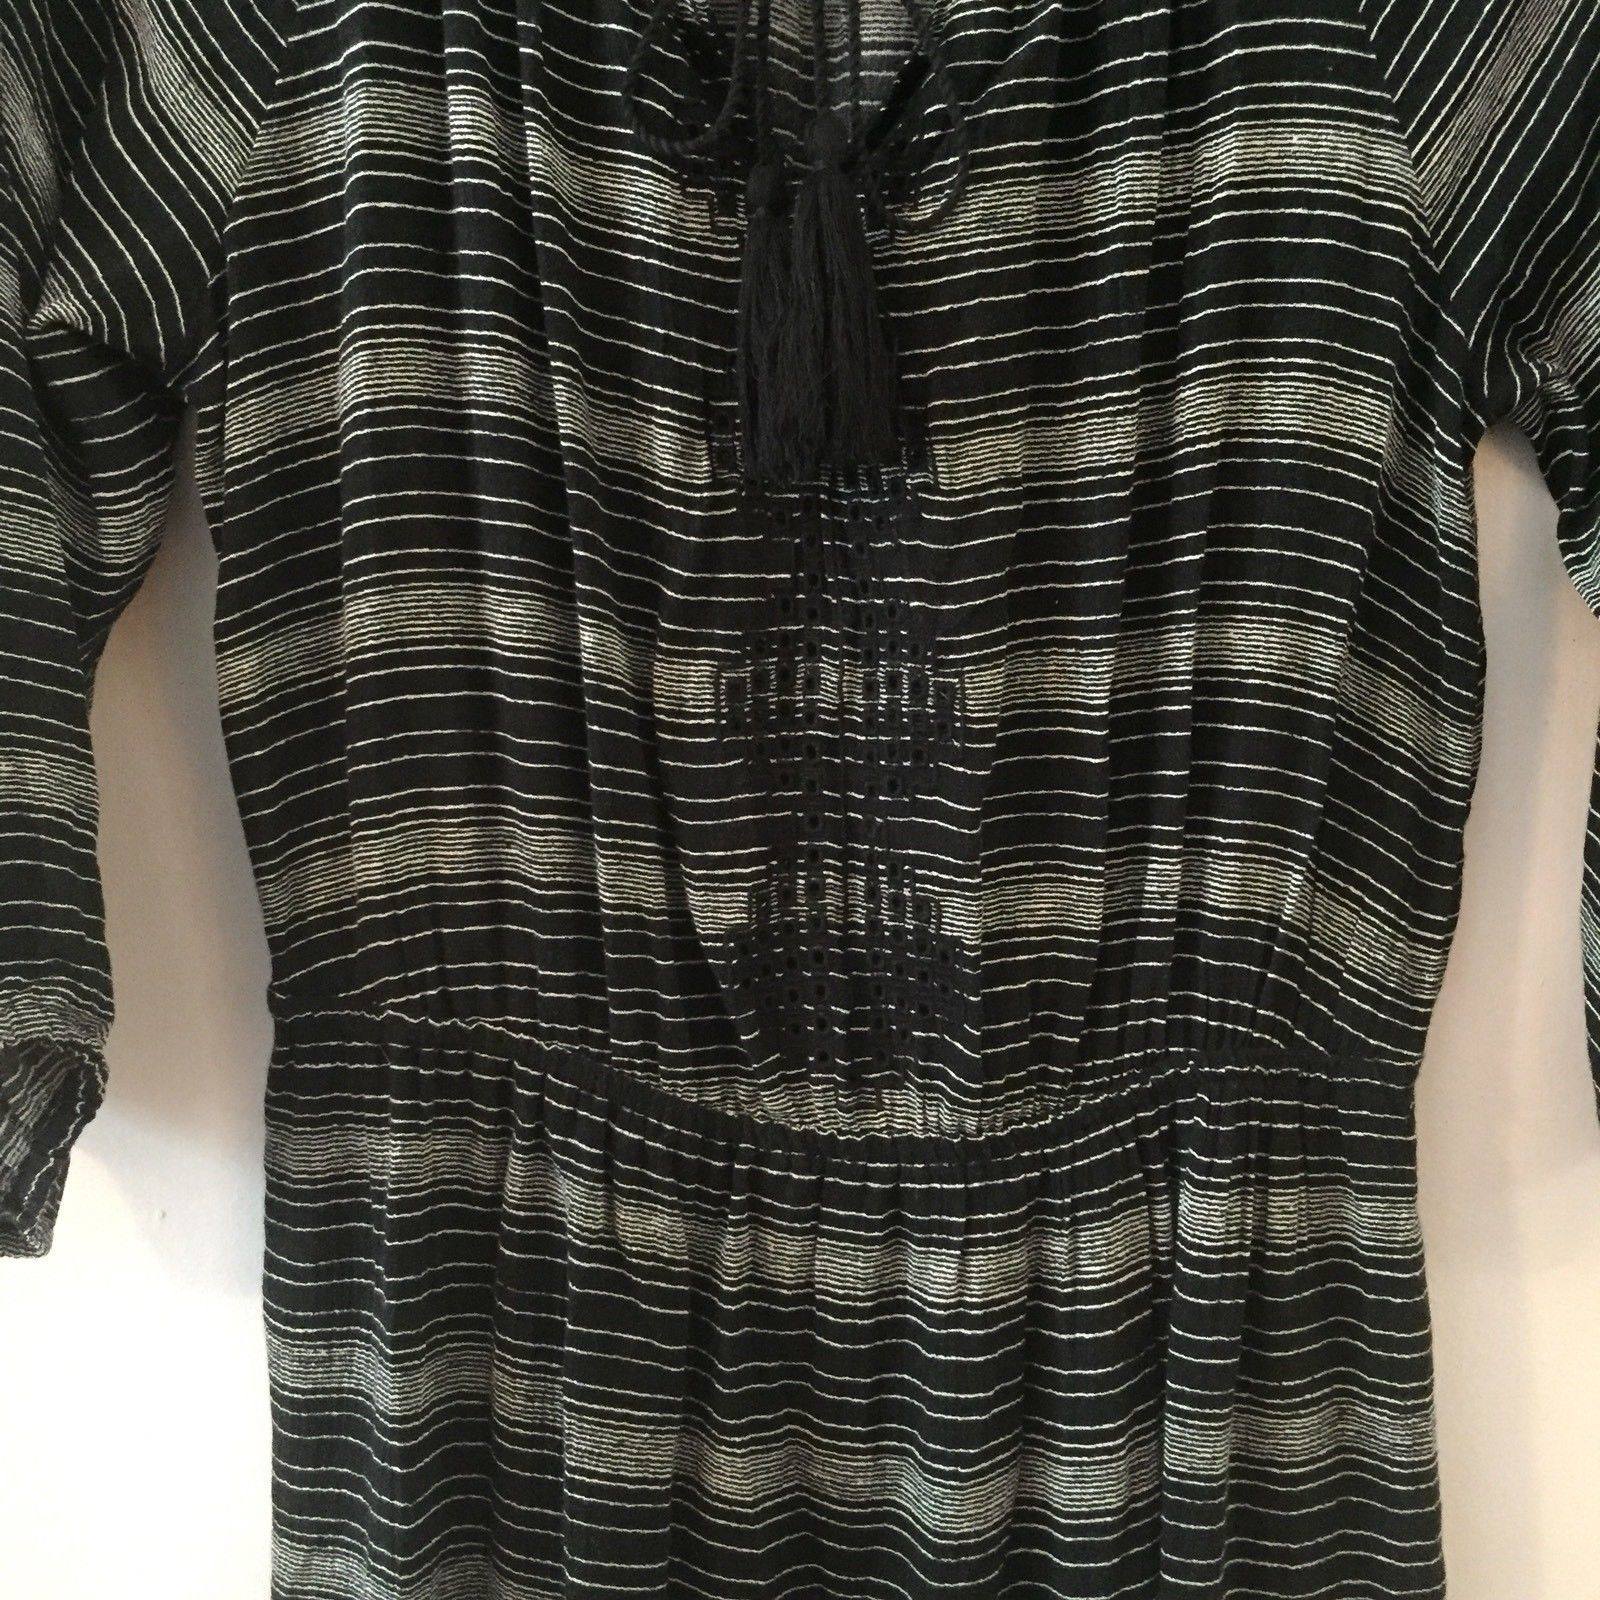 Ann Taylor Loft Black and White Peasant Dress Gathered Waist Size Small